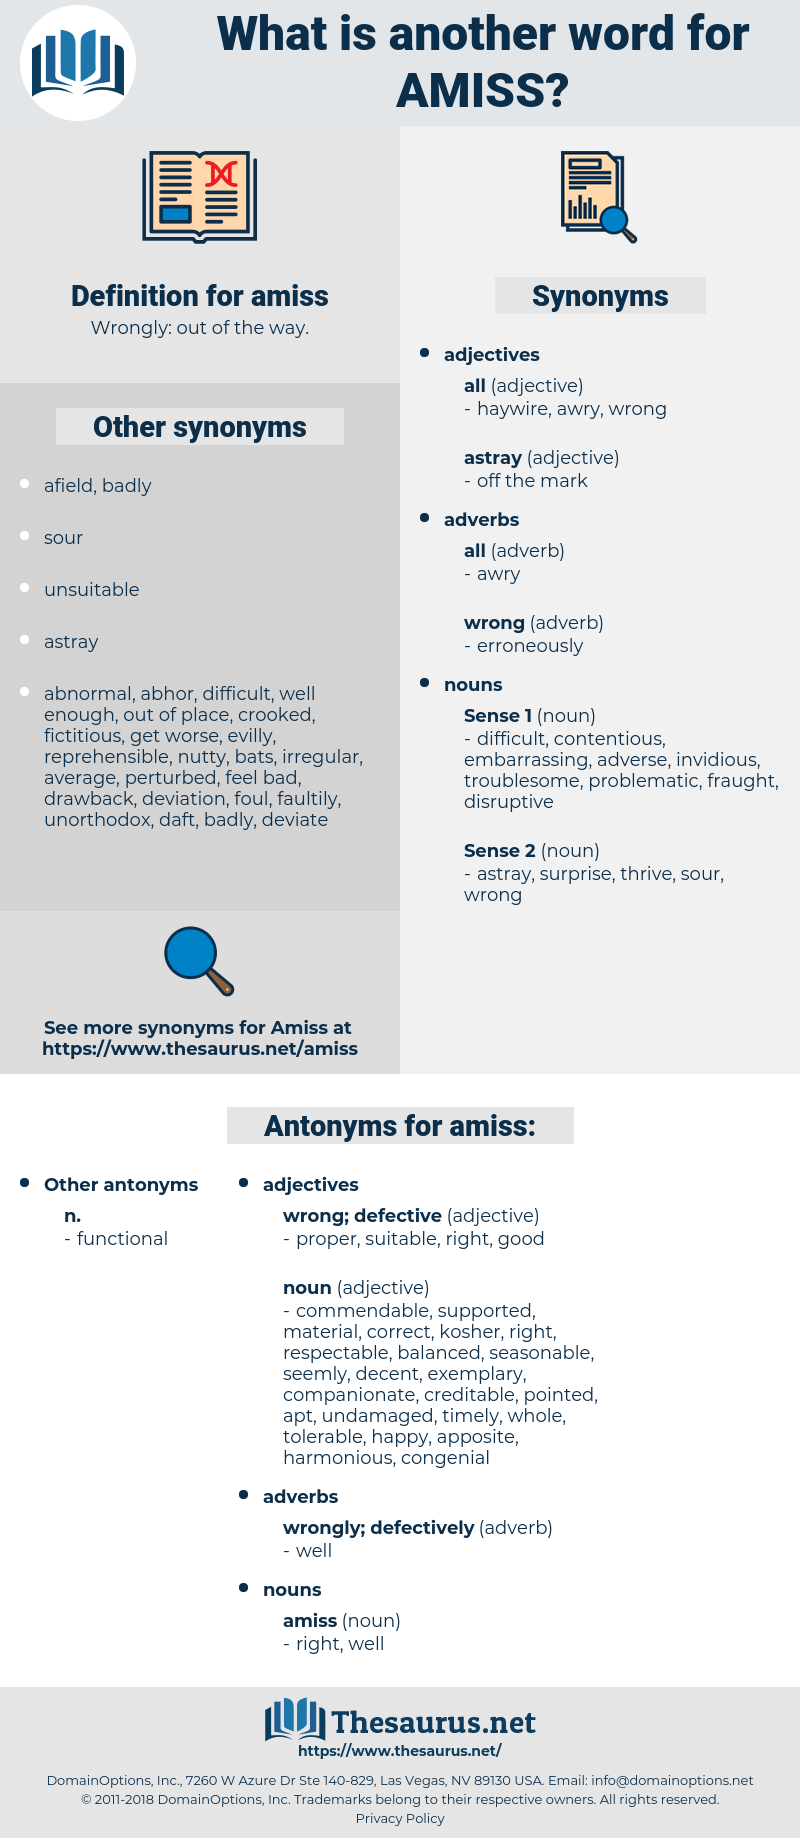 amiss, synonym amiss, another word for amiss, words like amiss, thesaurus amiss